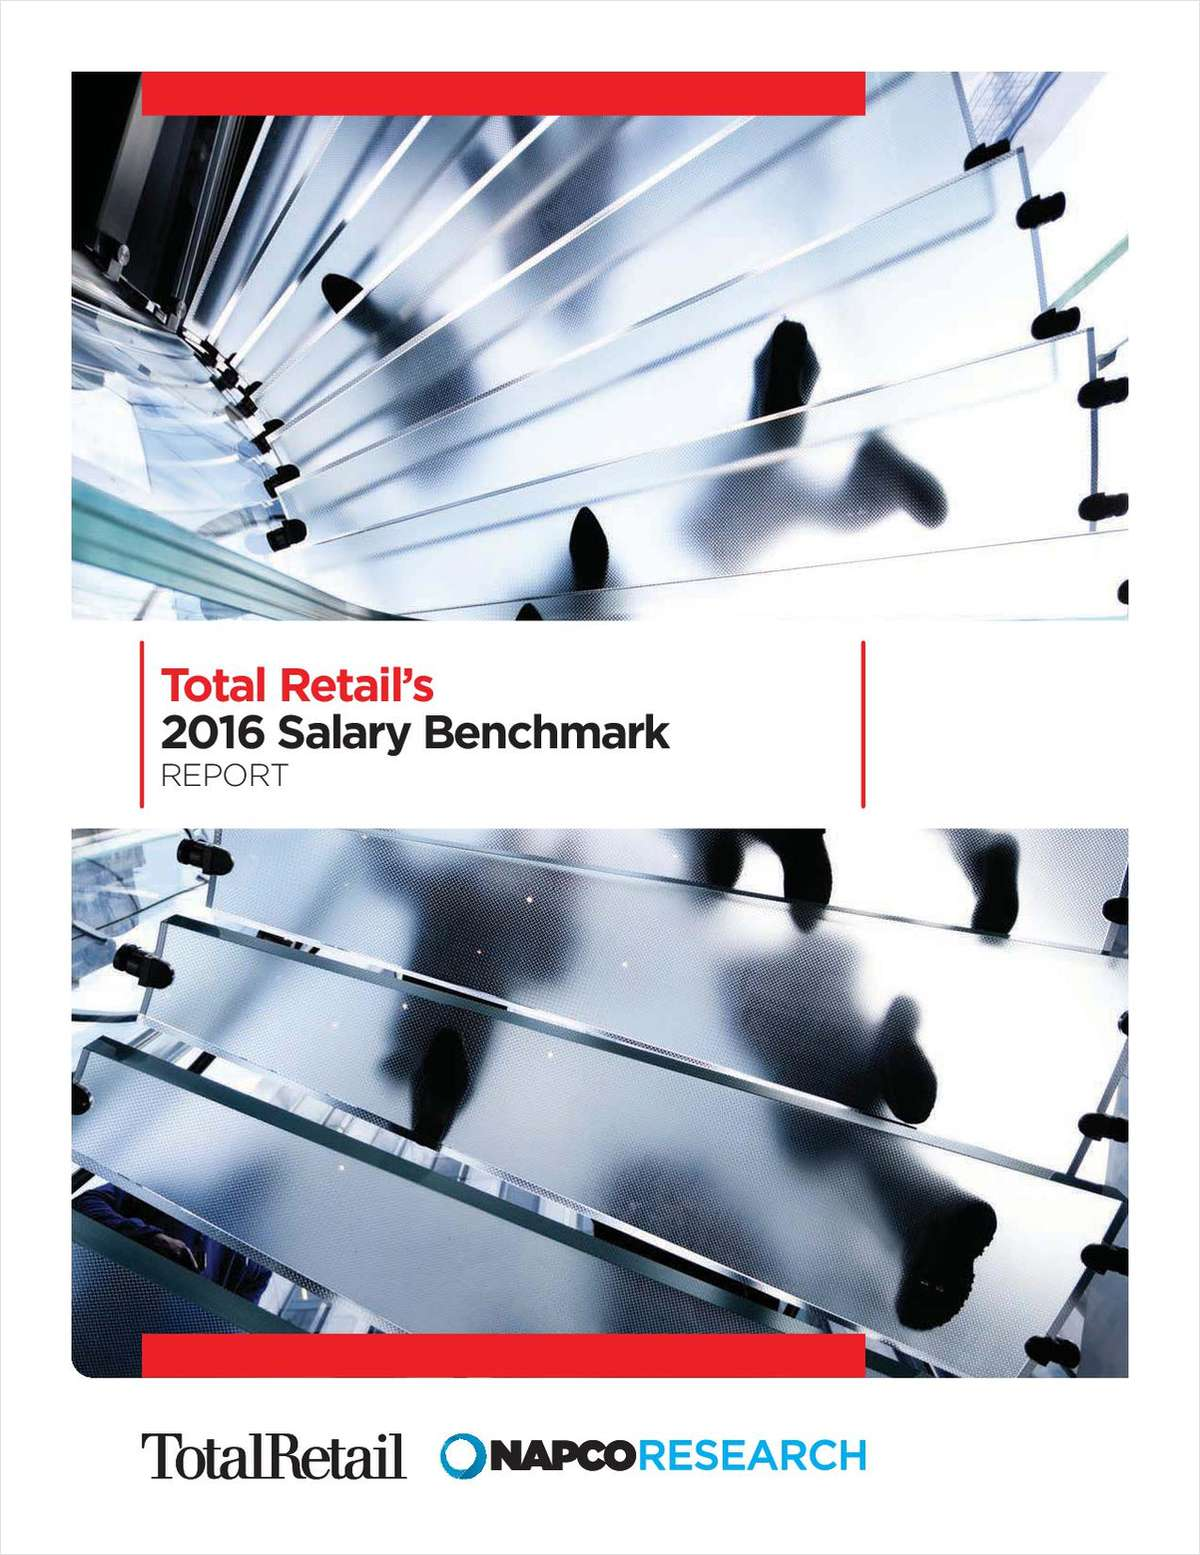 Total Retail's 2016 Salary Benchmark Report